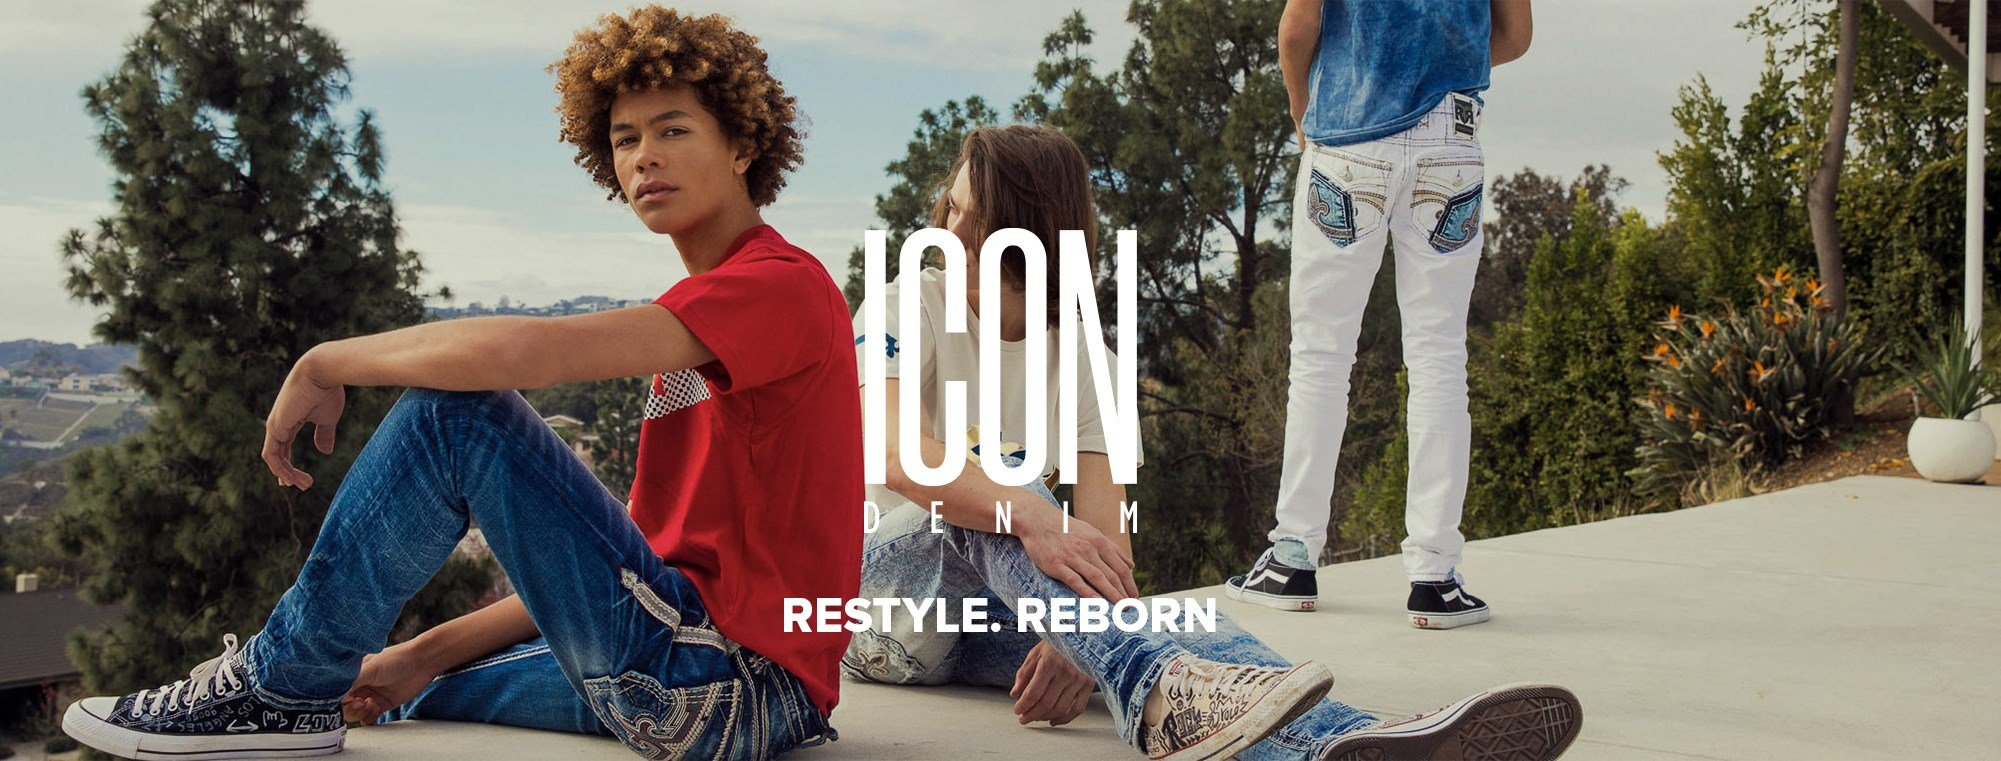 ICON DENIM